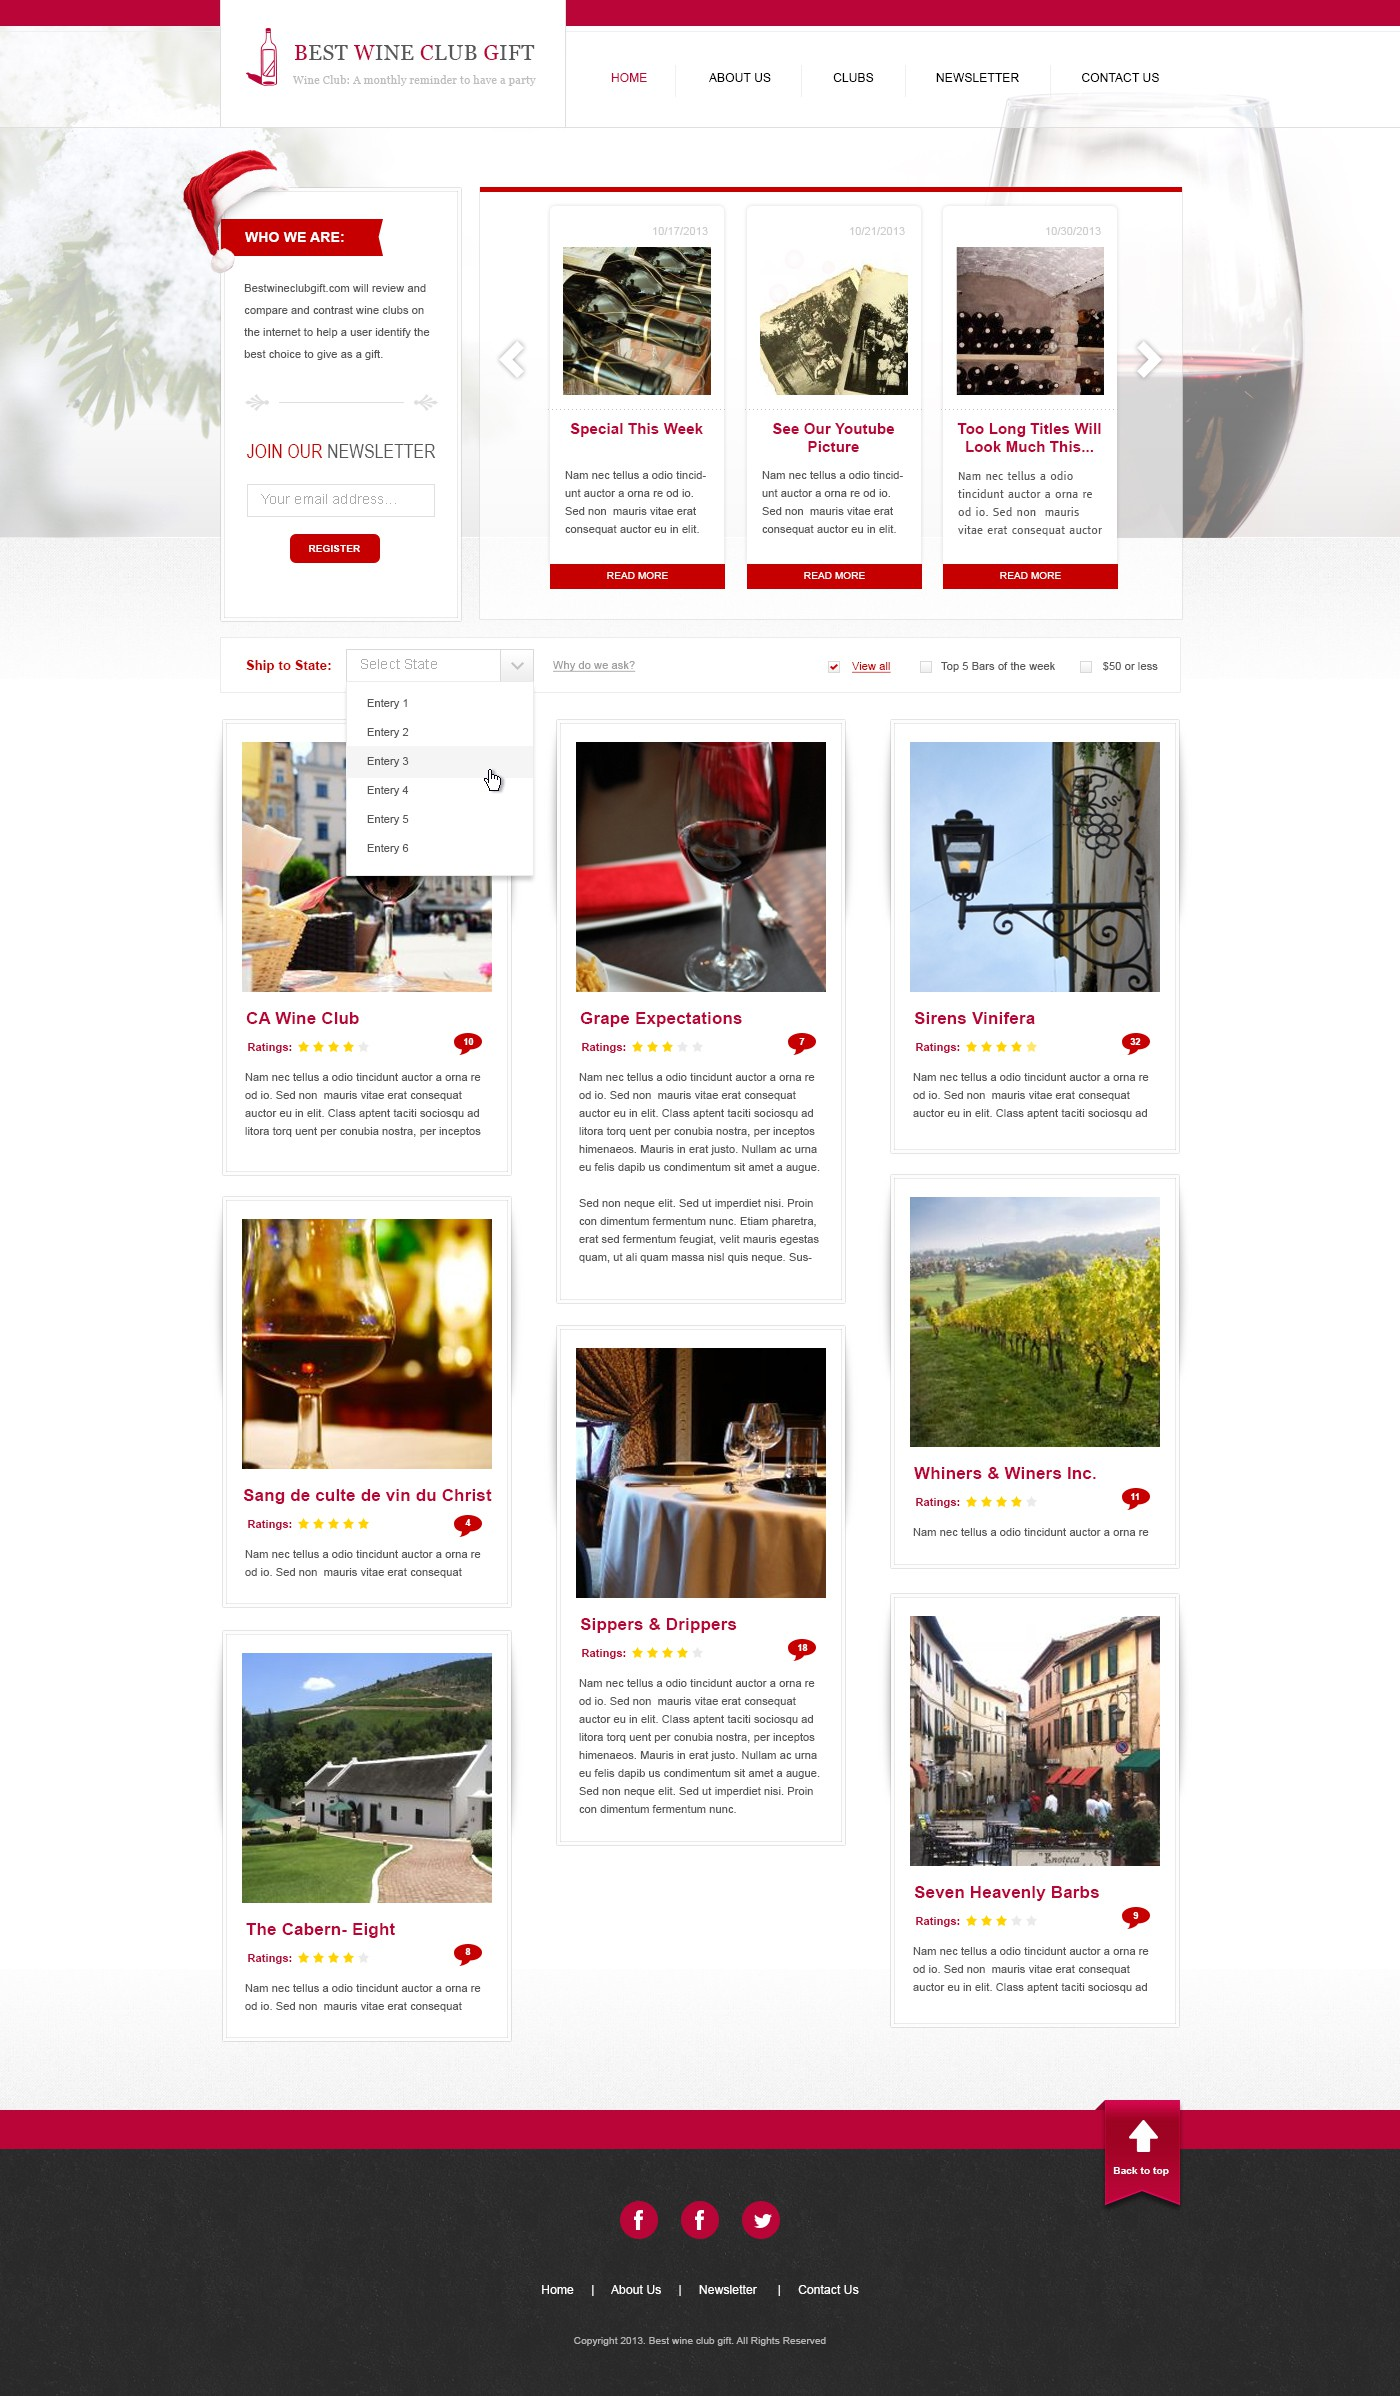 Festive Wine-Oriented Home Page Needed